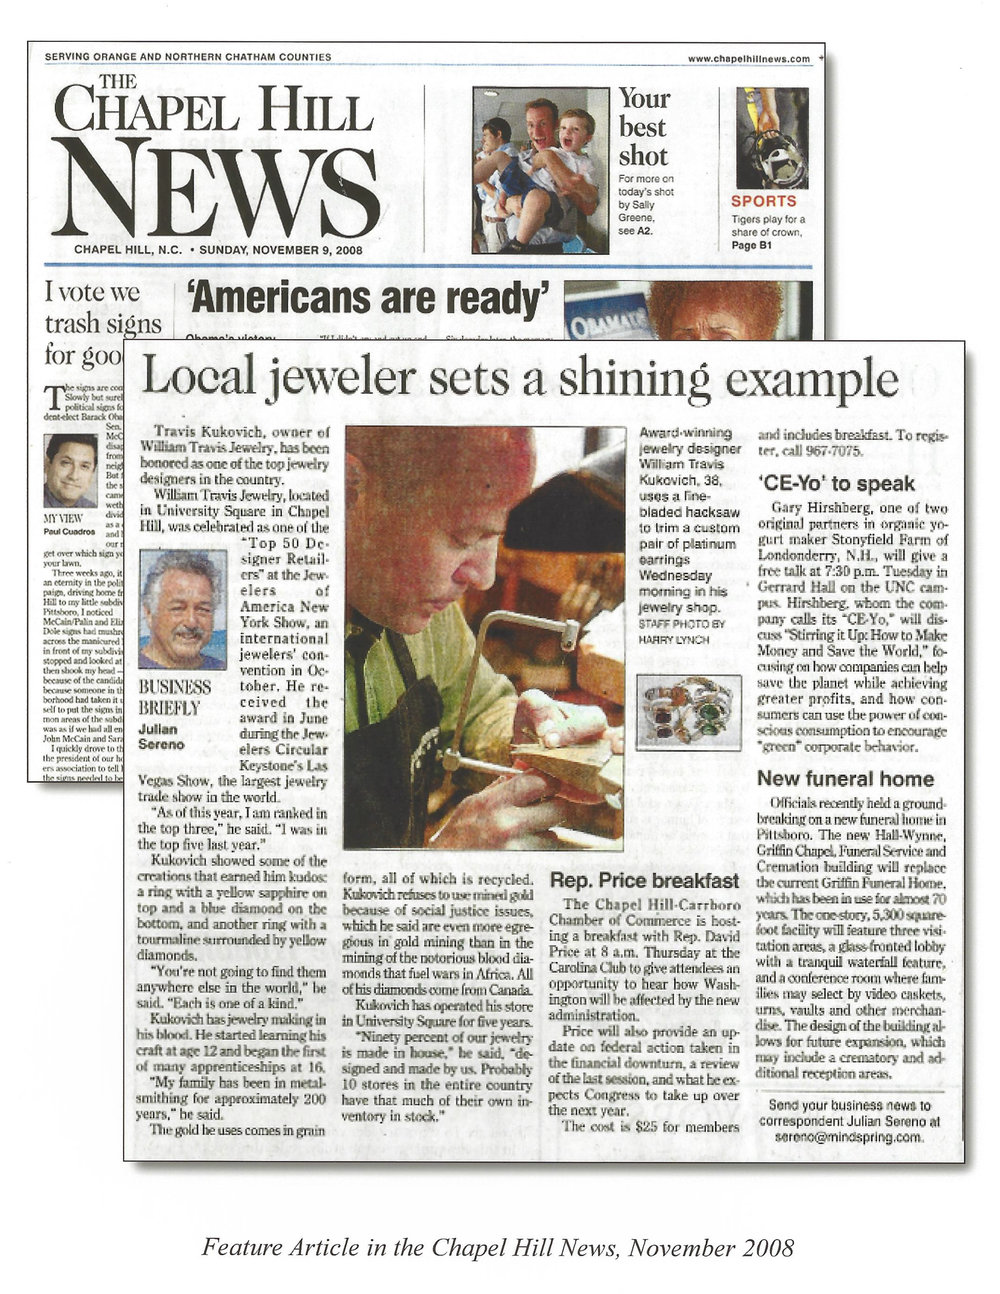 the-chapel-hill-news-novermber-2008.jpg